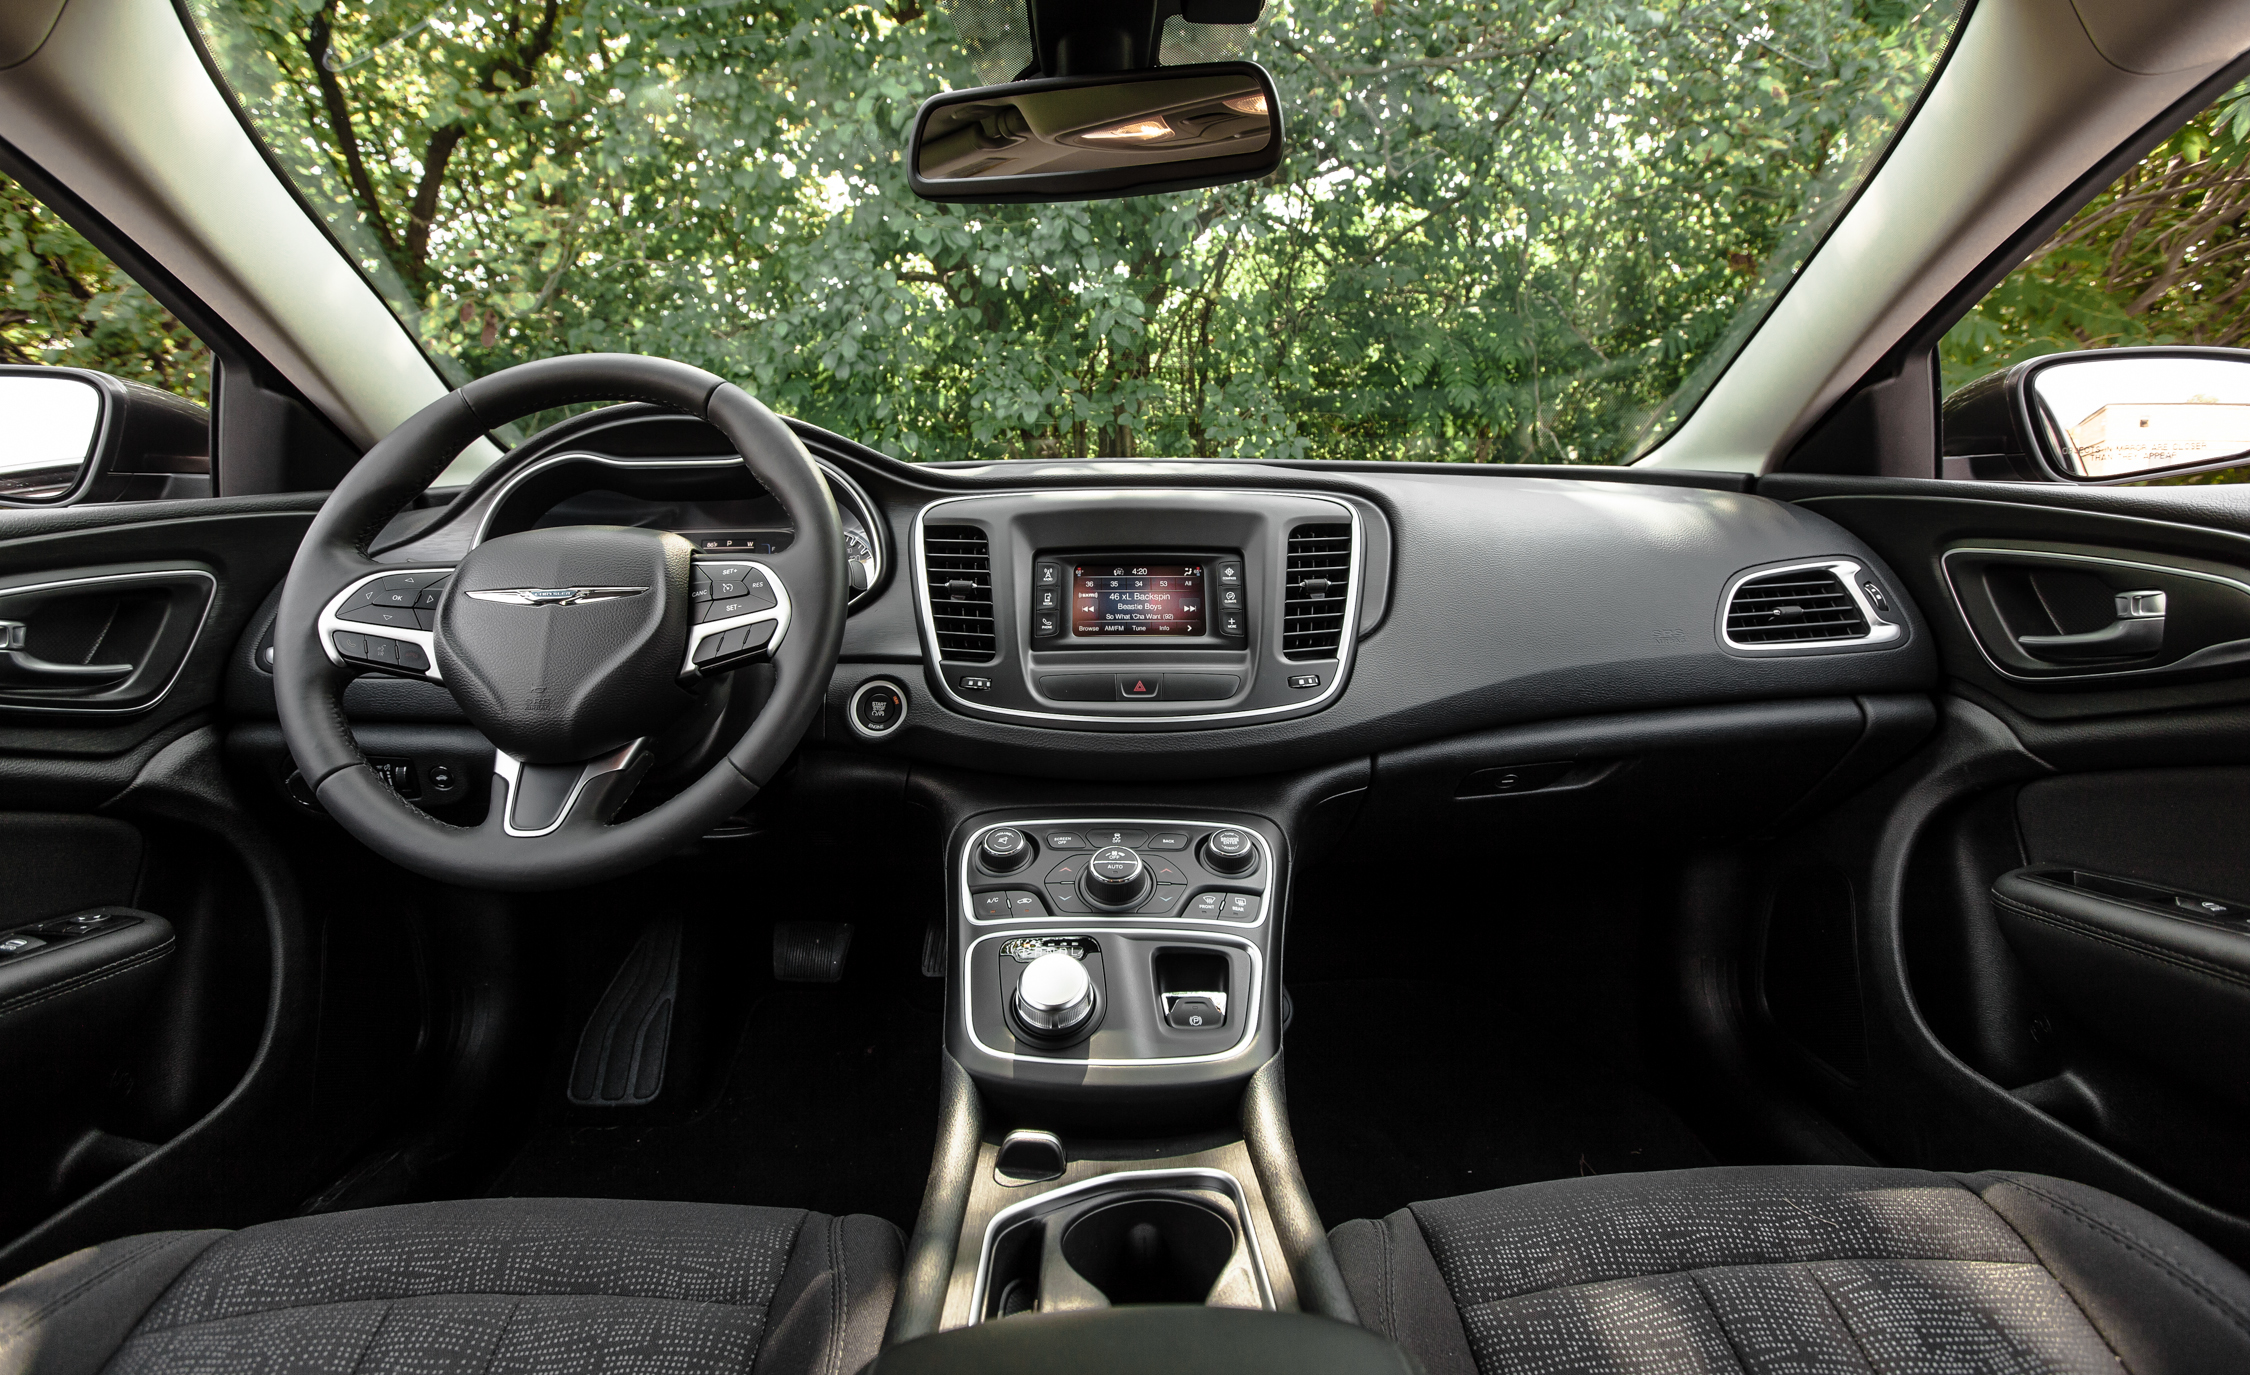 Captivating 2015 Chrysler 200 Limited Interior (Photo 11 Of 19)